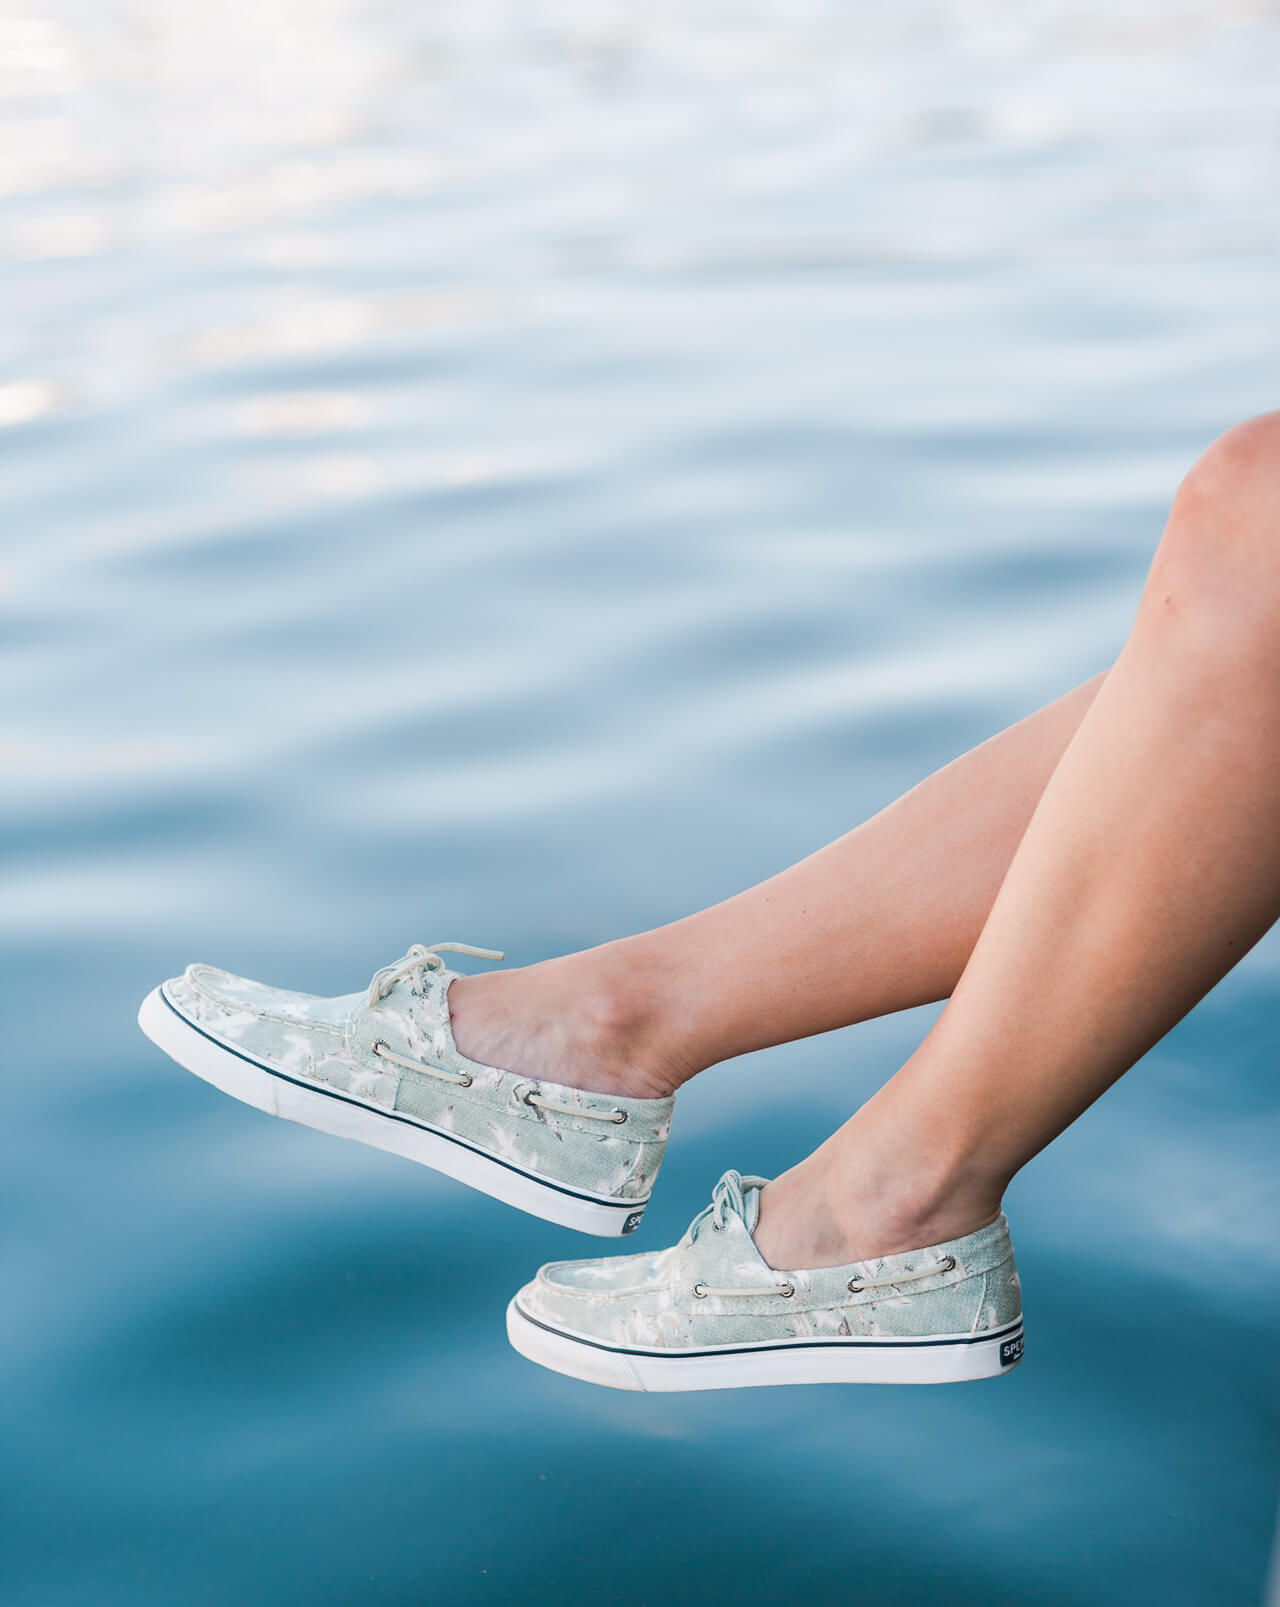 the cutest summer sperry's that have seagulls on them!